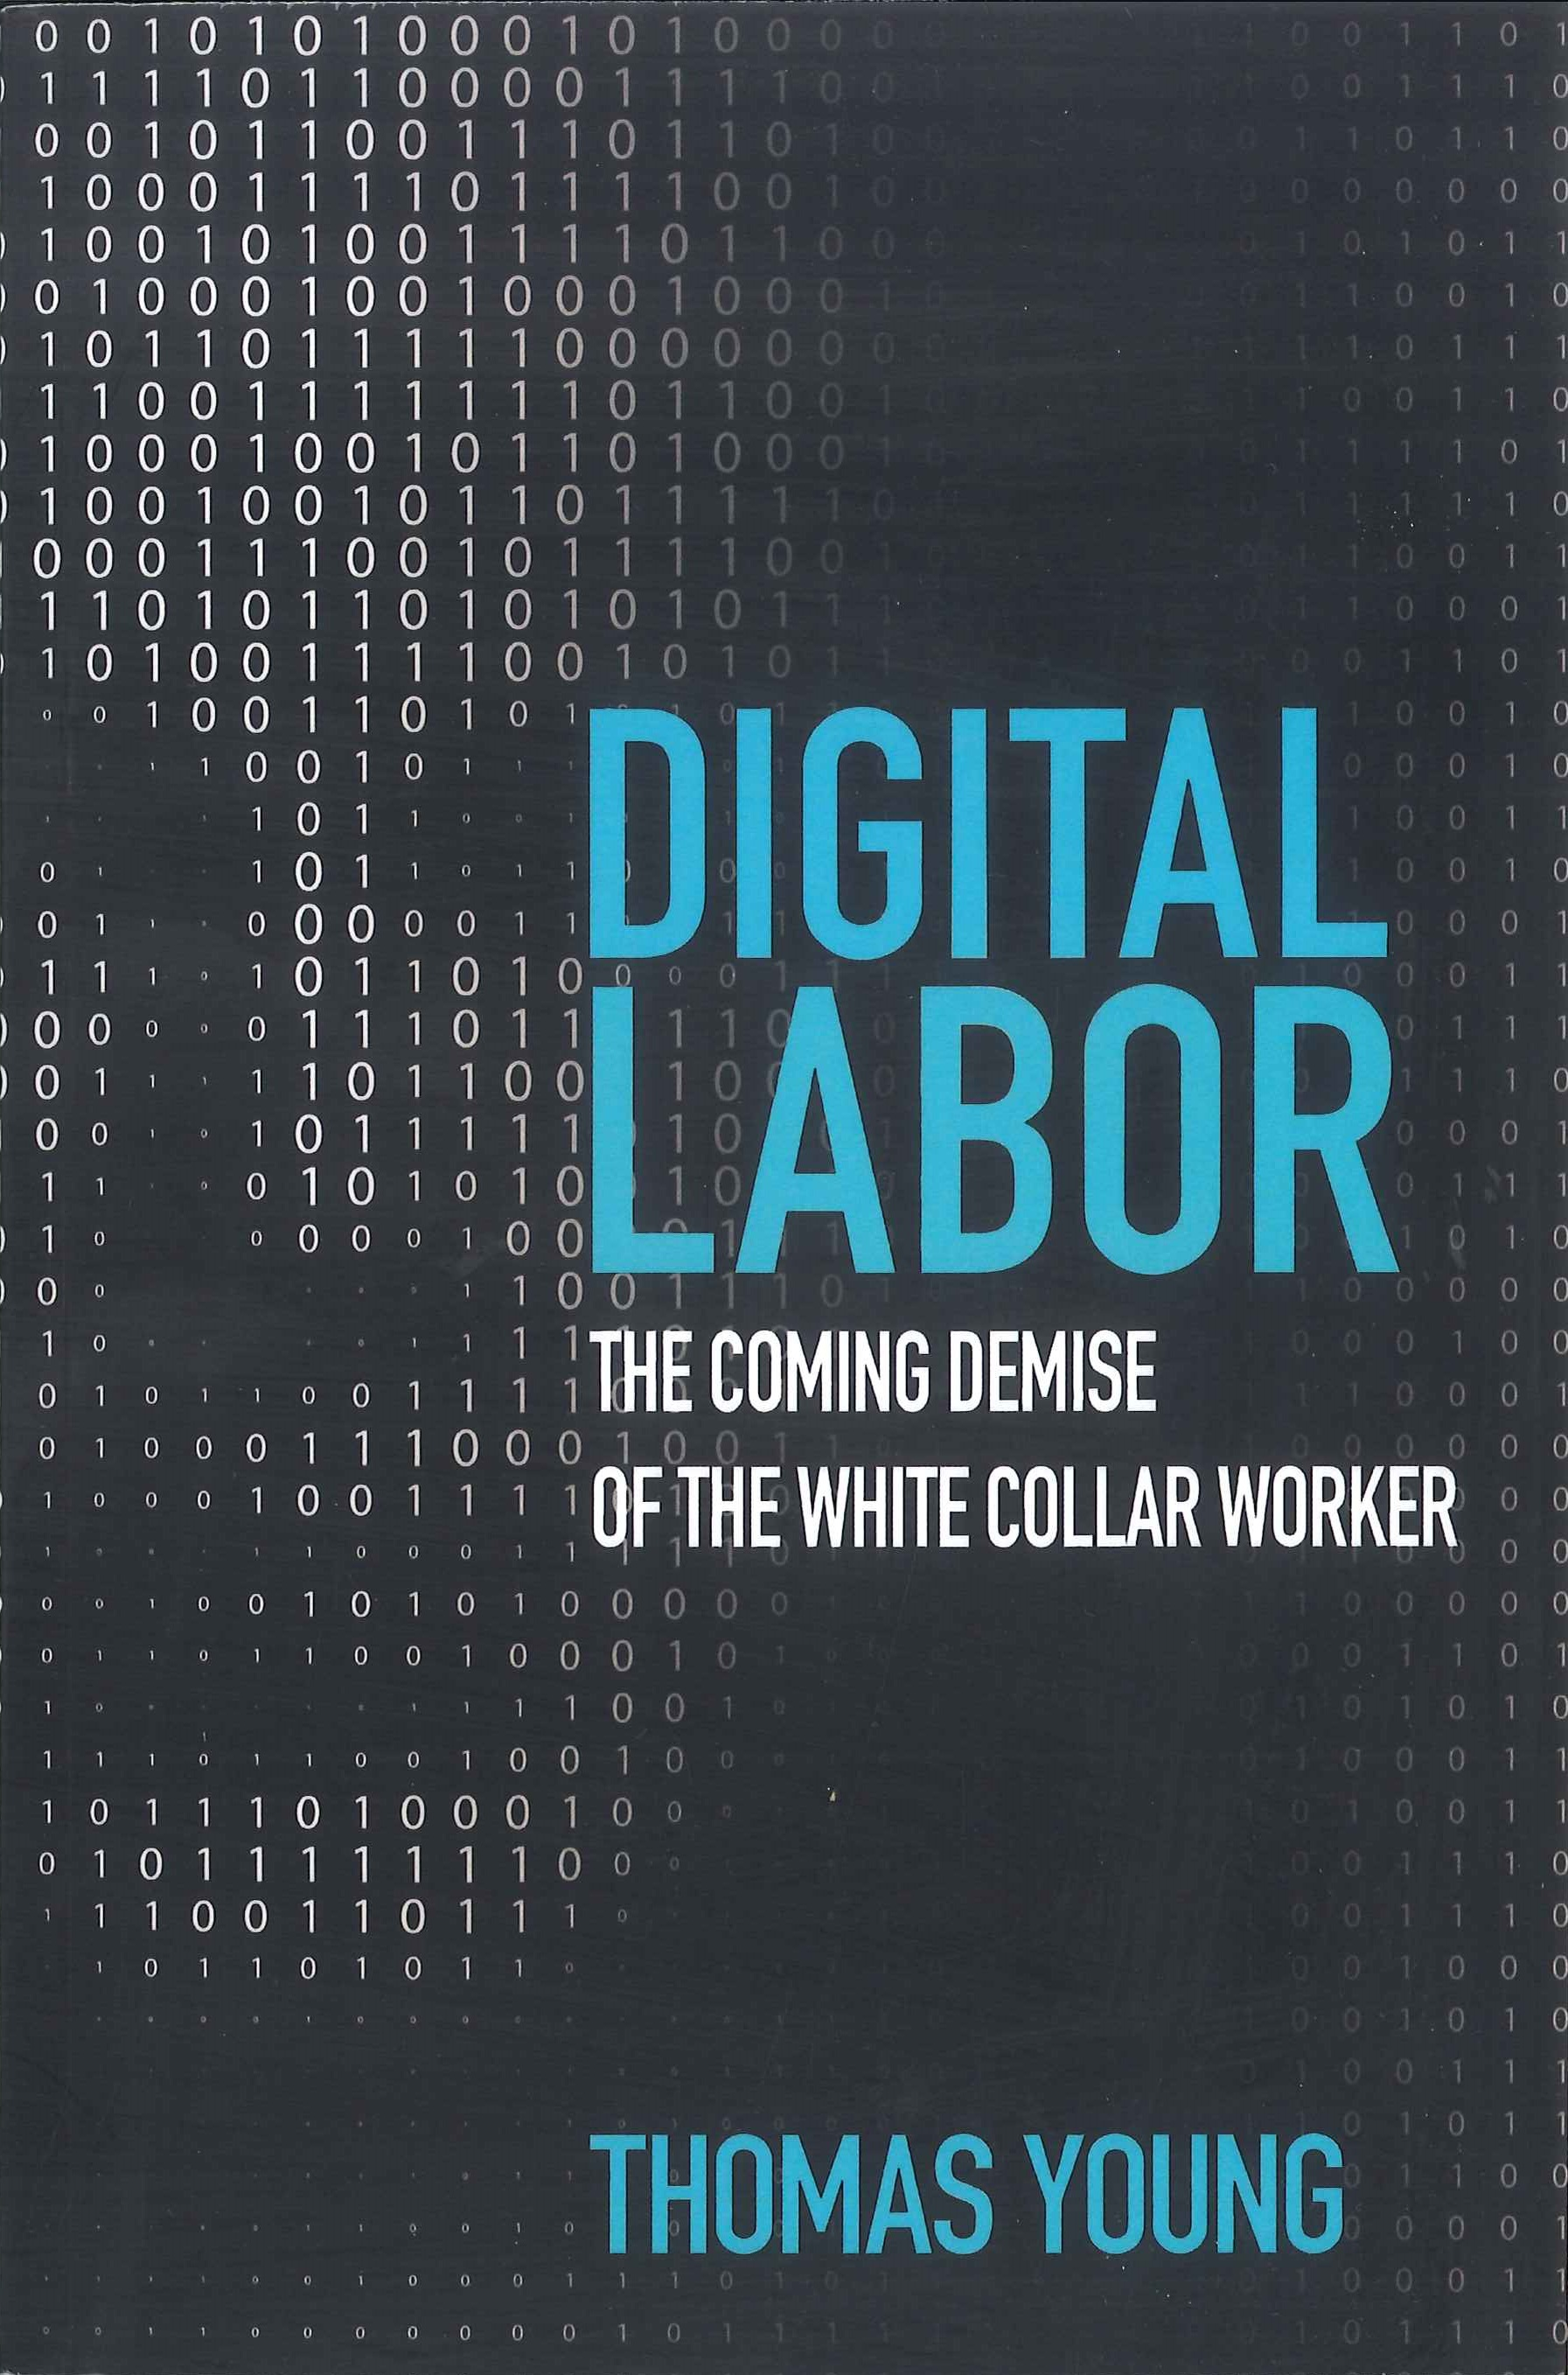 Digital labor:the coming demise of the white collar worker